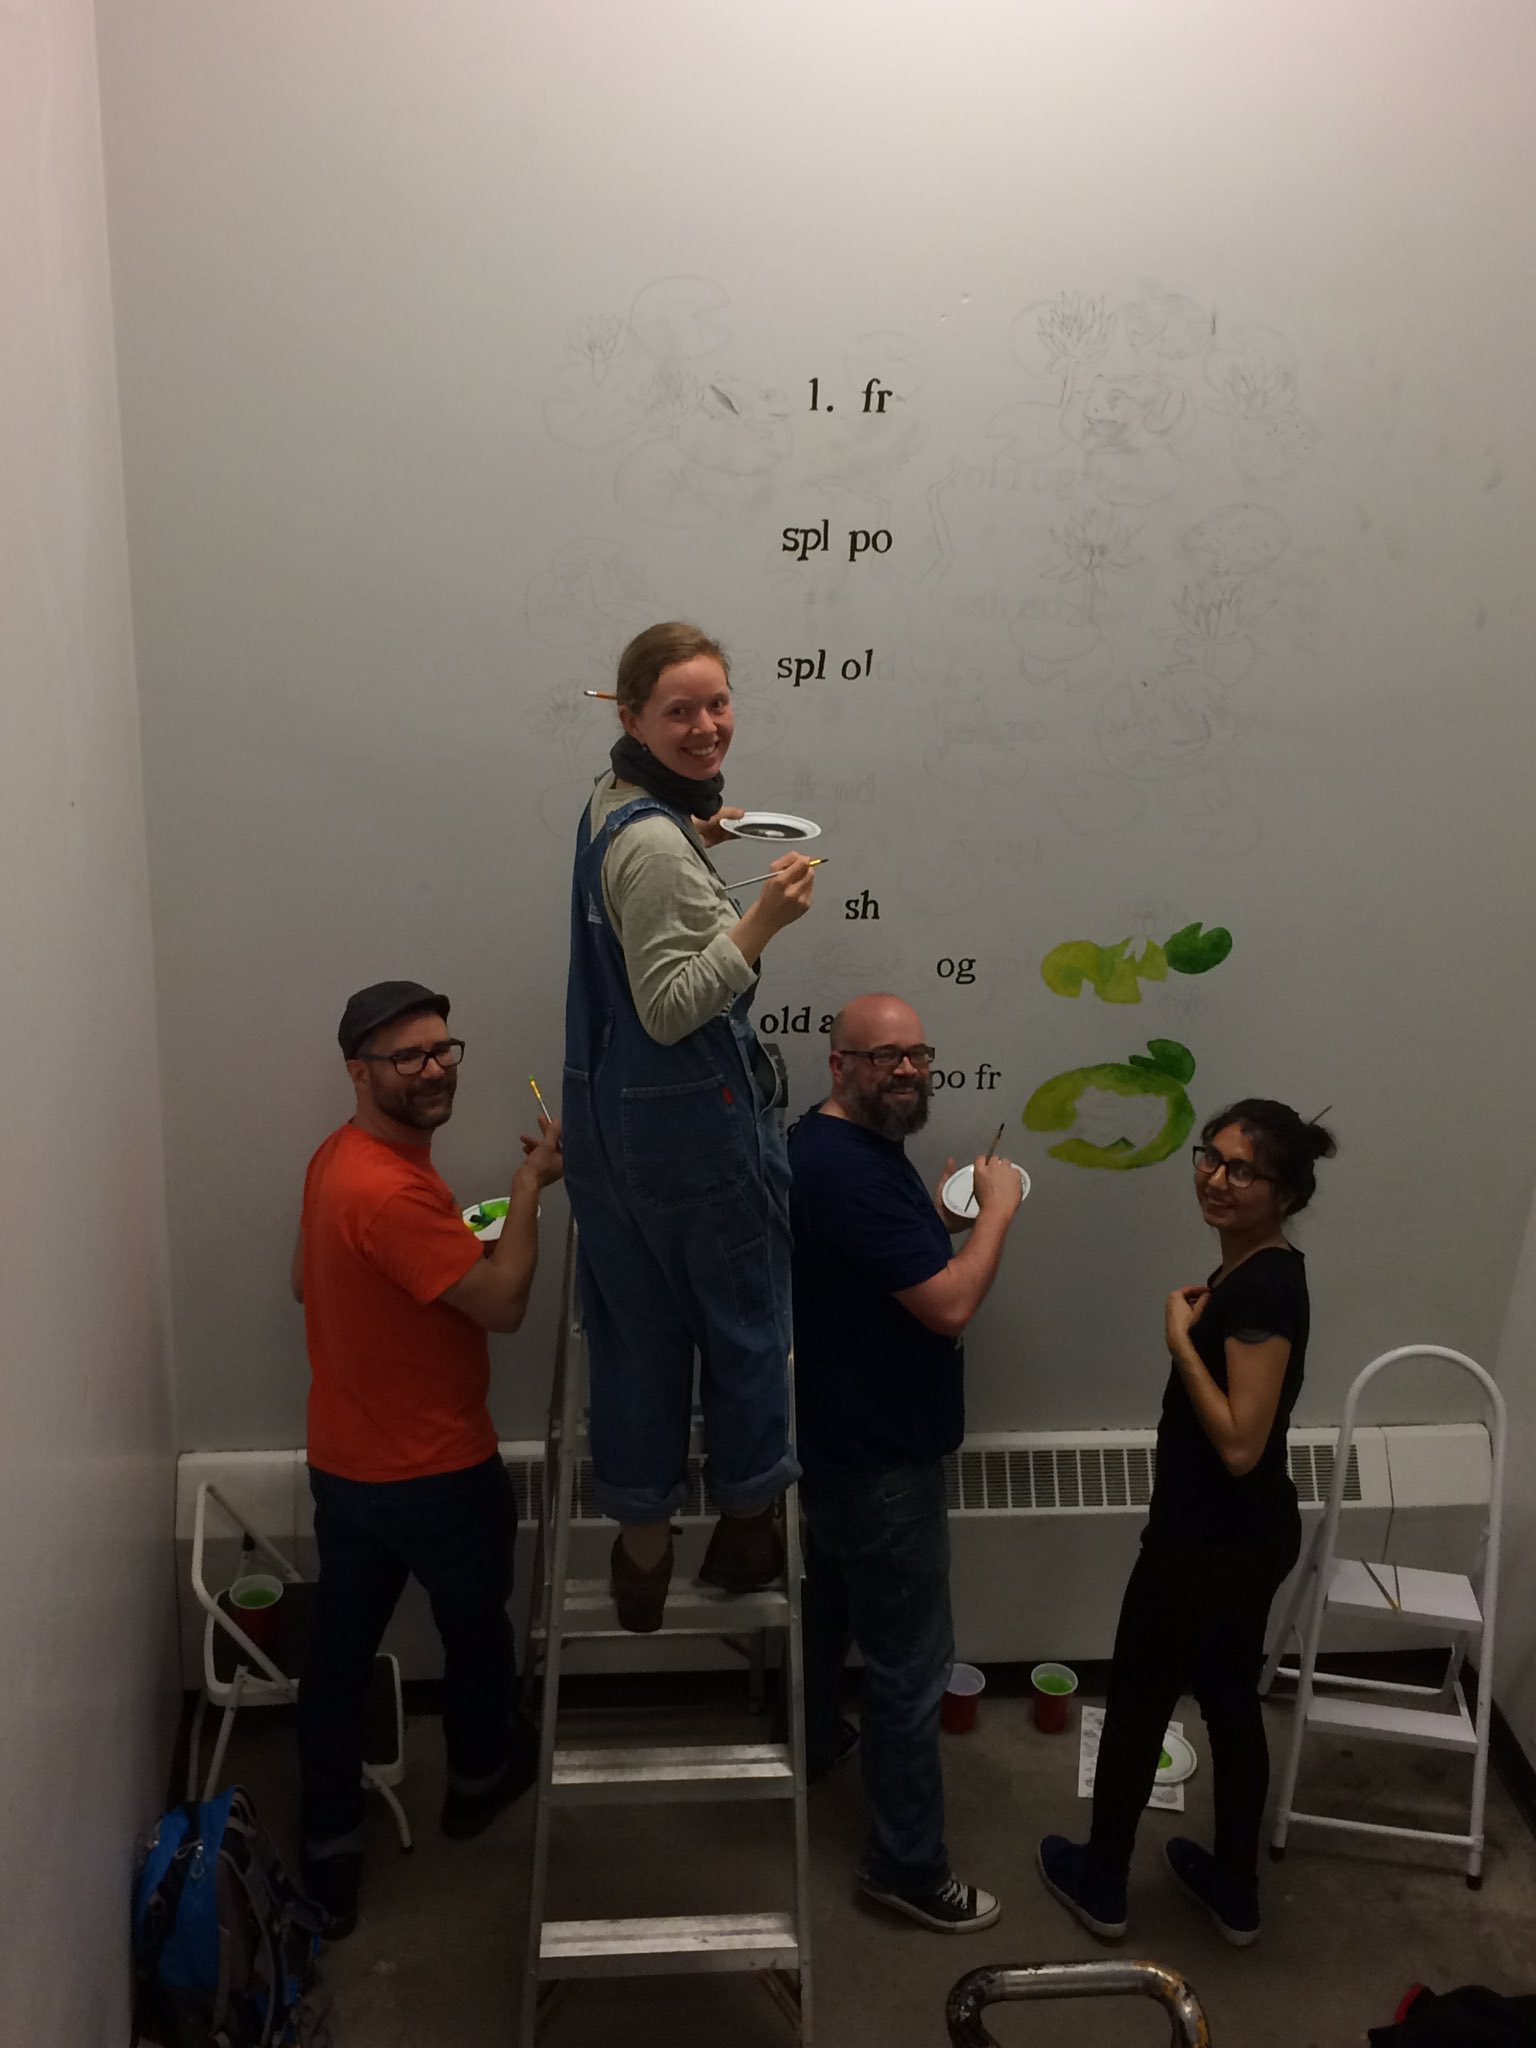 """Not only are we restoring Leon but we""""re adding a new mural. Can't wait for finished masterpiece. @UCalgary_Arts #LeonLives #yycarts https://t.co/Z4Q9sMGD3k"""